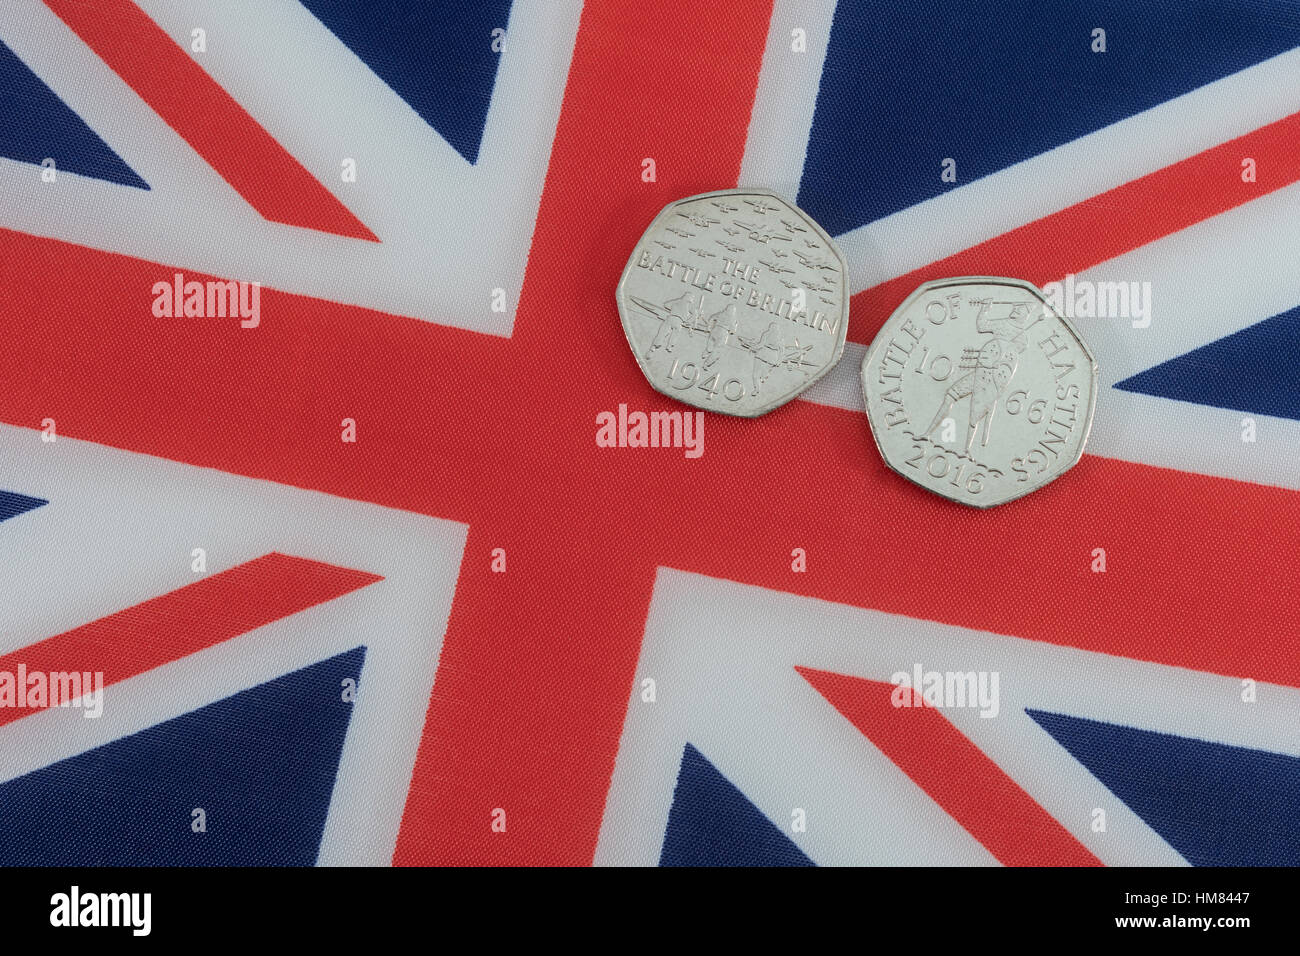 Union Jack with 50p commemorative coins - Battle of Britain and Battle of Hastings - Stock Image